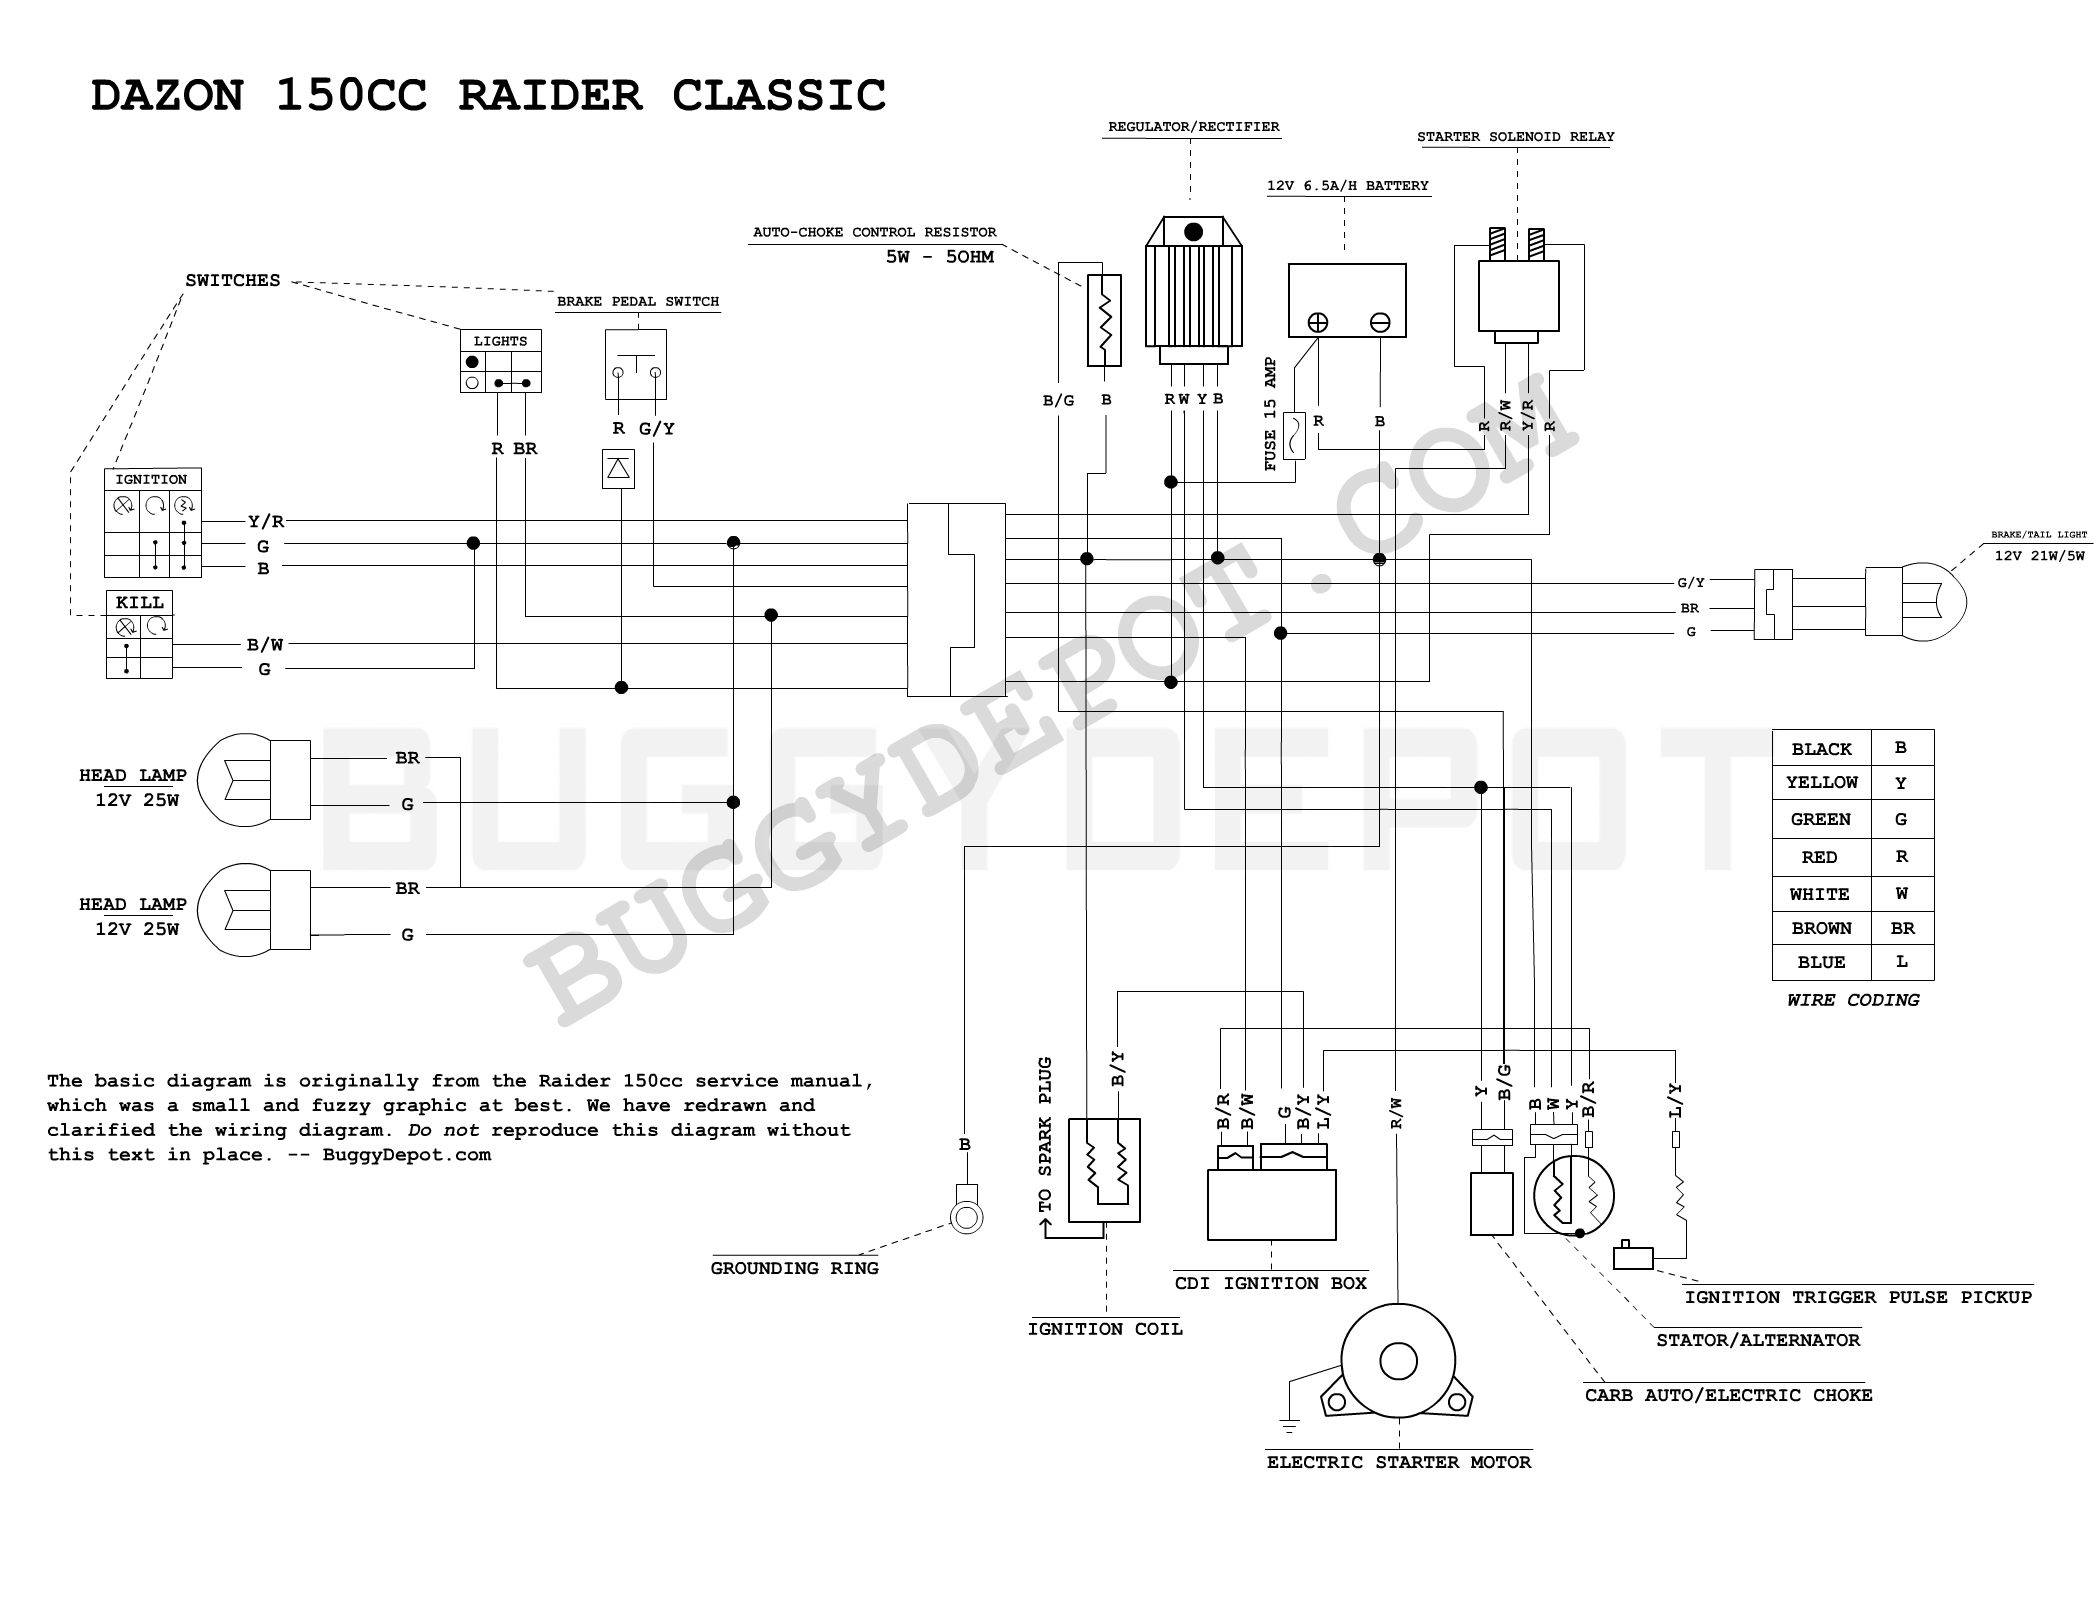 article_33_1278205207 carter talon 150 wiring diagram  at mifinder.co